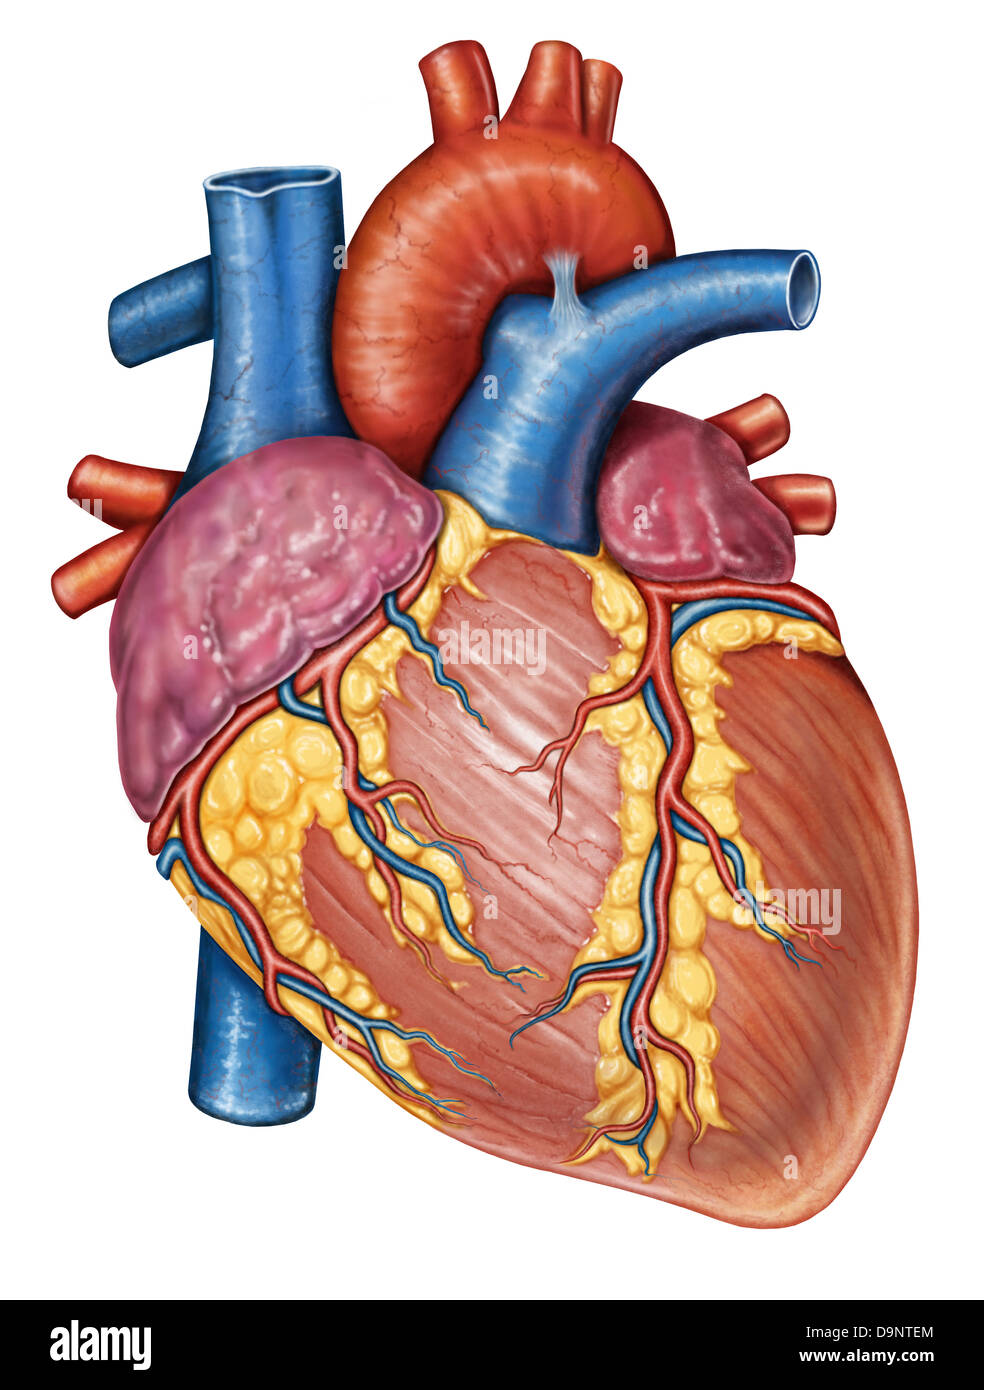 Heart human anatomy